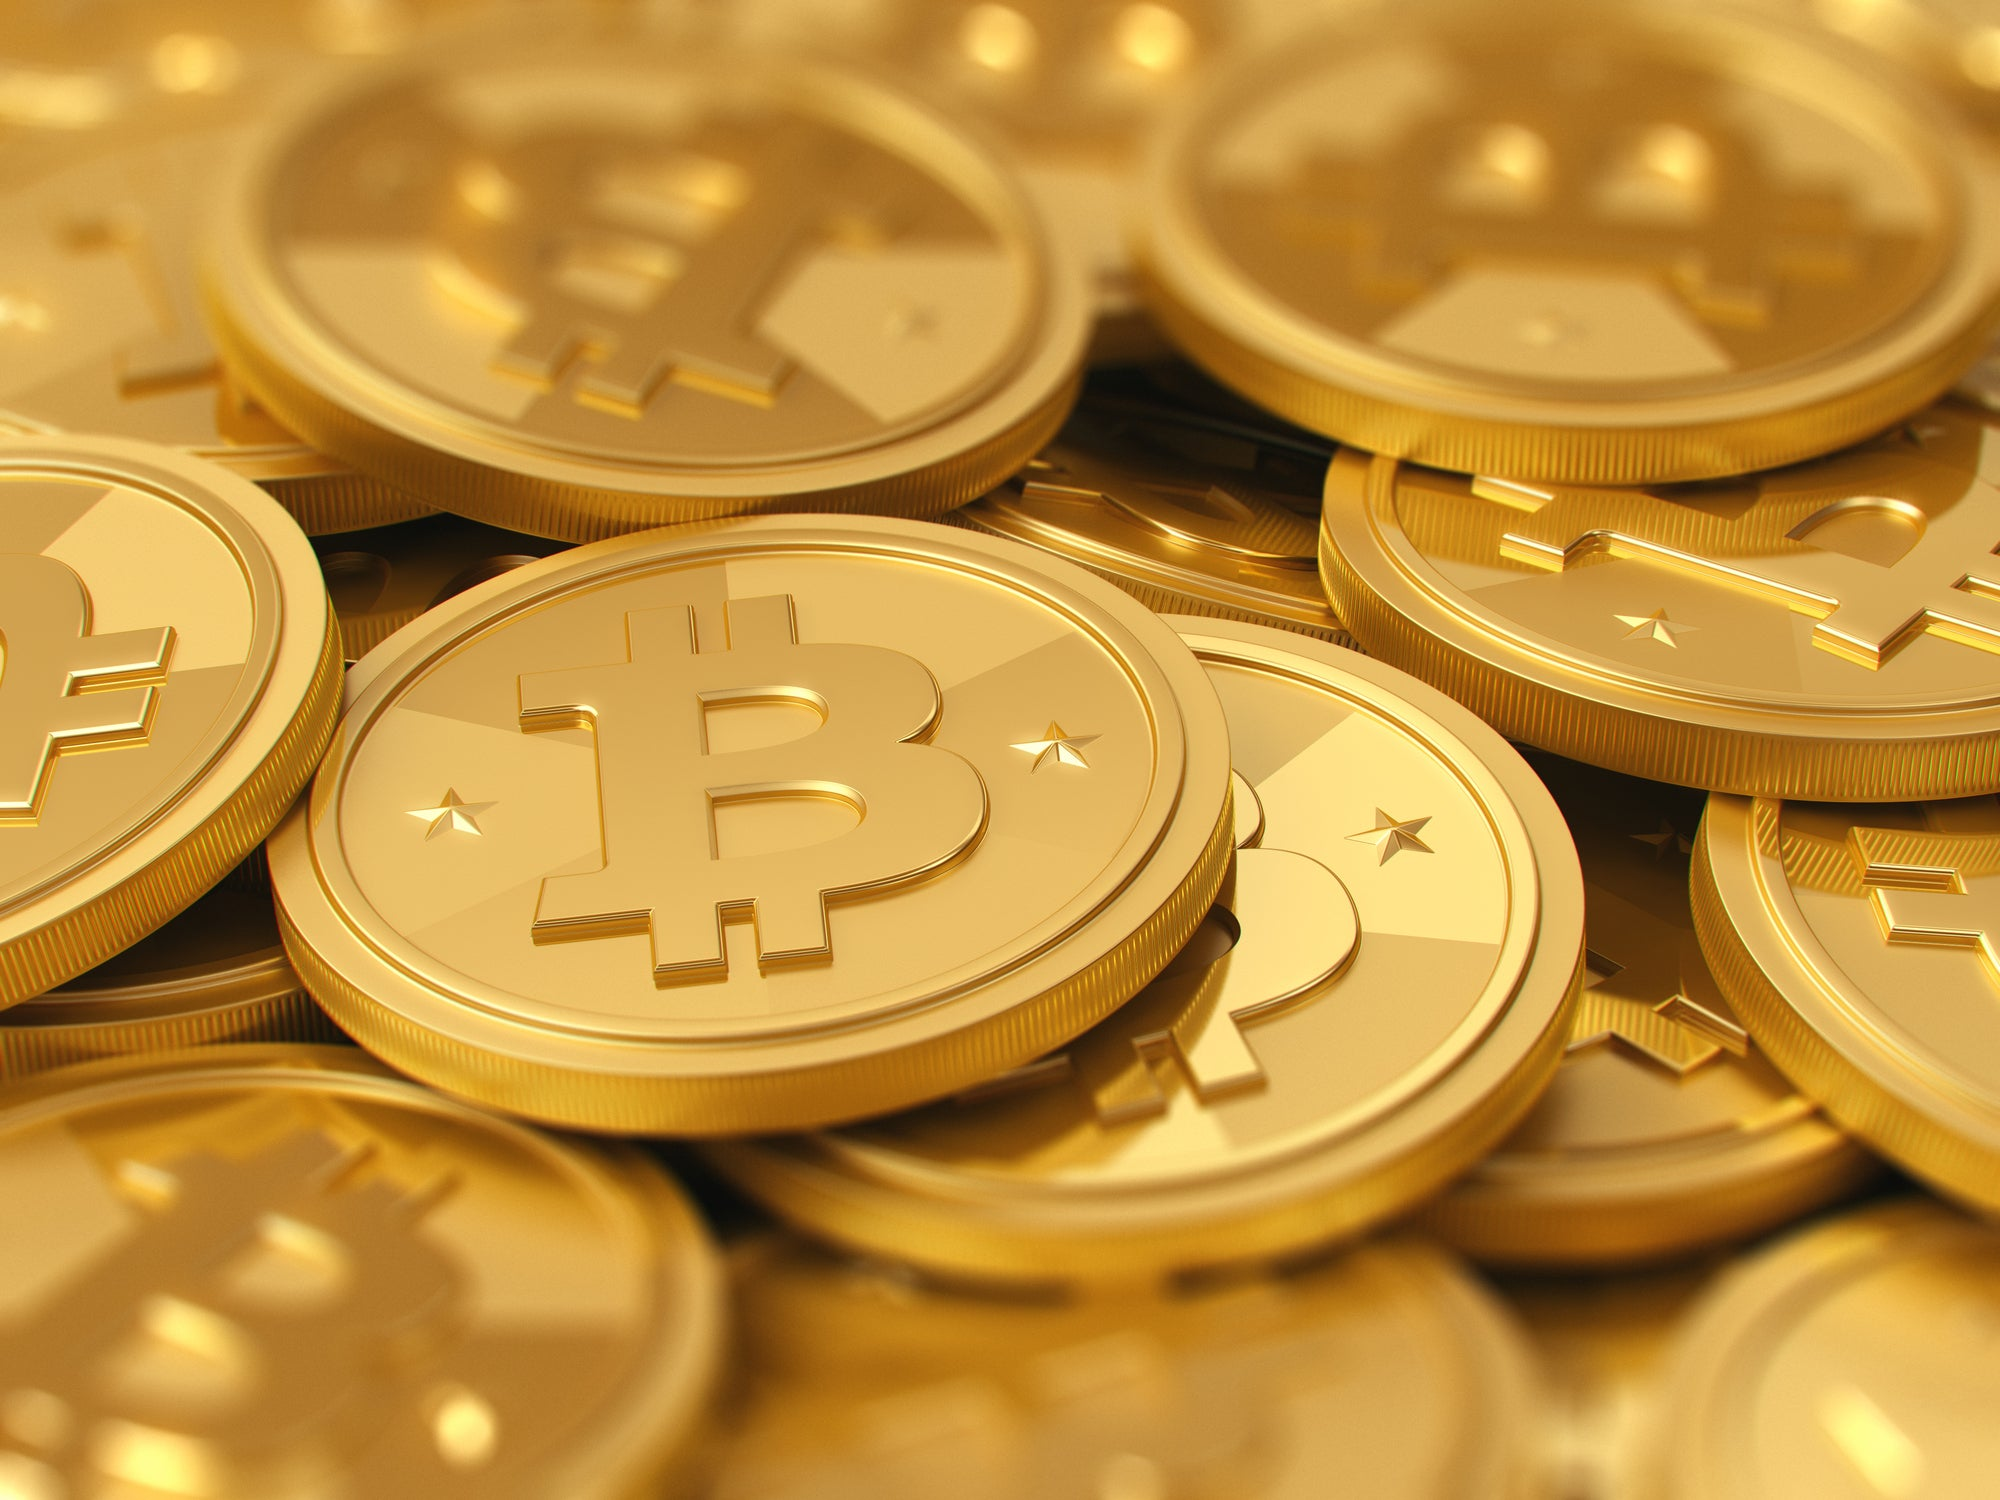 3 Investments That Are Better Than Bitcoin